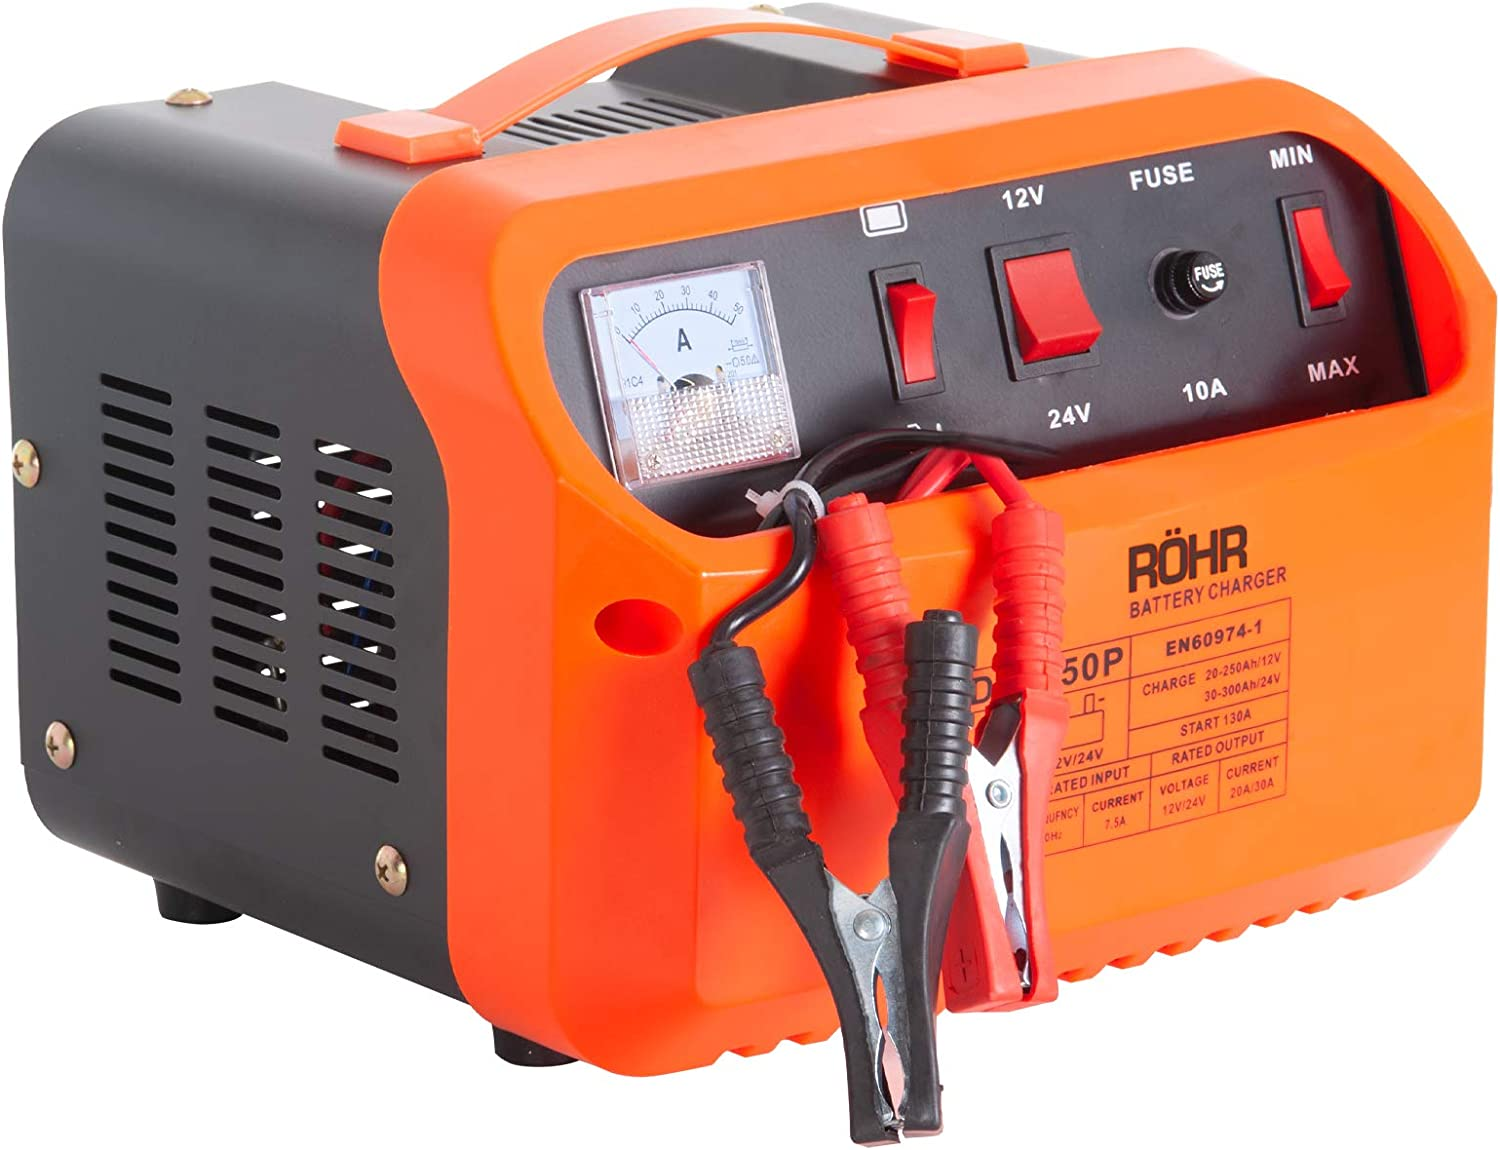 Röhr Car Battery Charger 45 Amp 12V 24V DFC 50P Intelligent TurboTrickle with Battery Repair, Maintain and Jump Start Technology